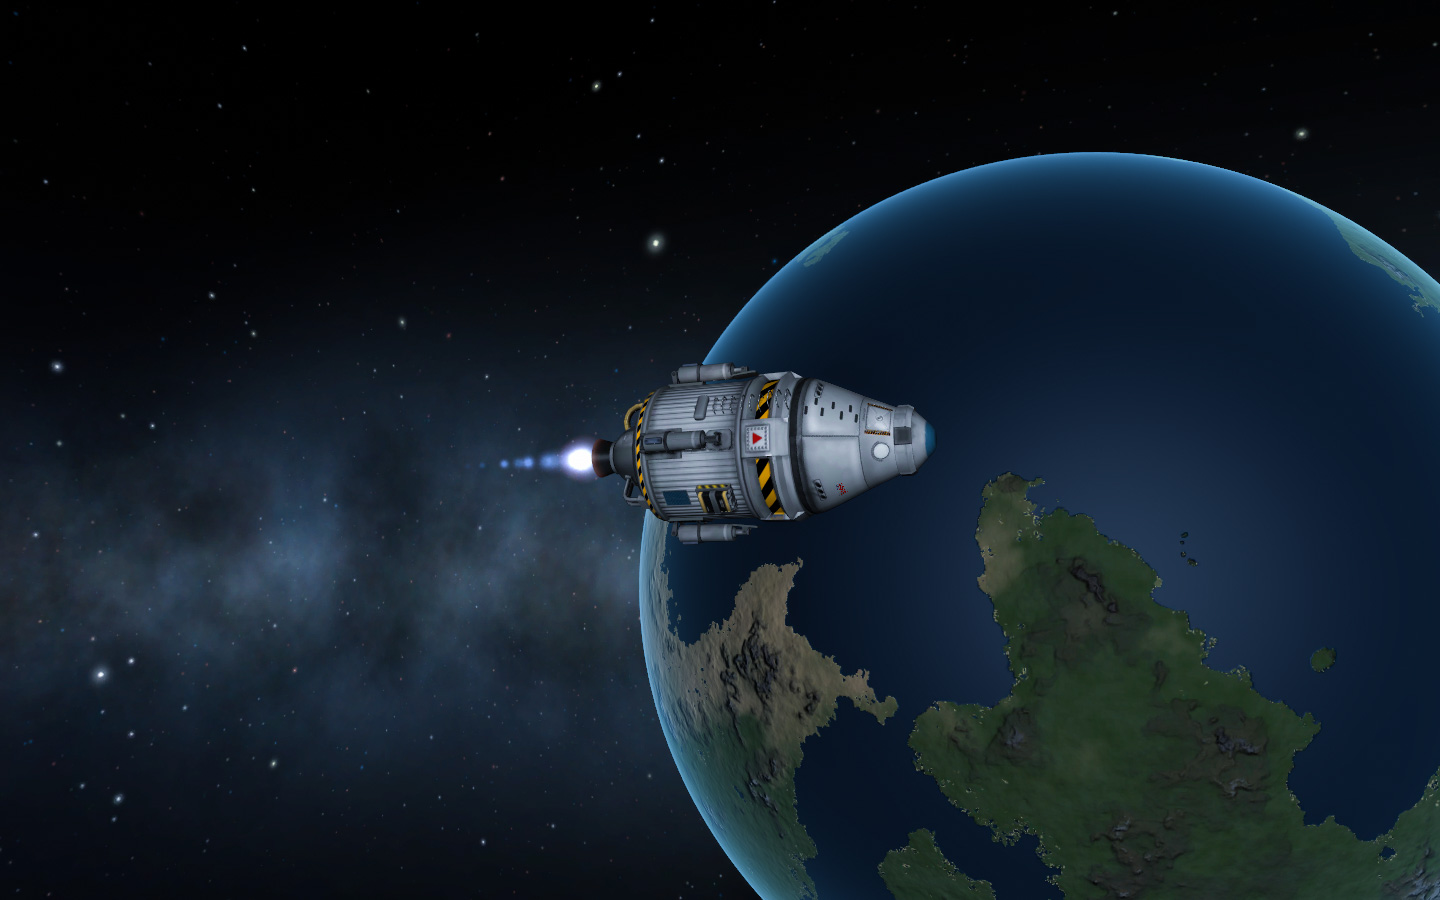 screenshot from Kerbal Space Program of a rocket flying over a blue, Earth-like planet